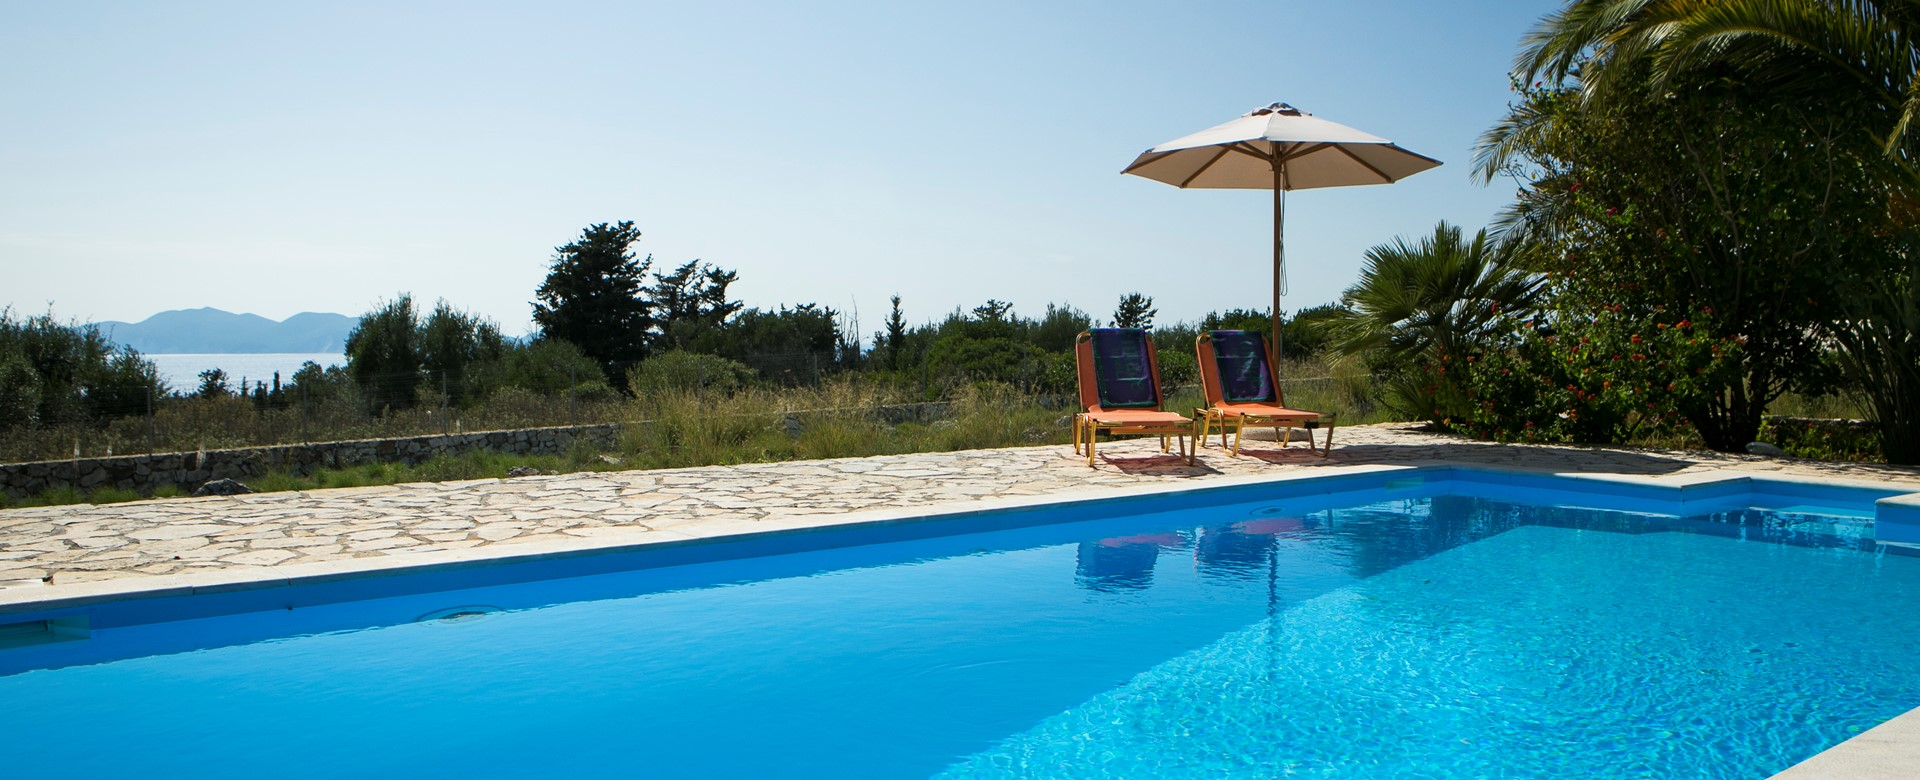 View of pool and views at Villa Nefeli, Fiscardo, Kefalonia